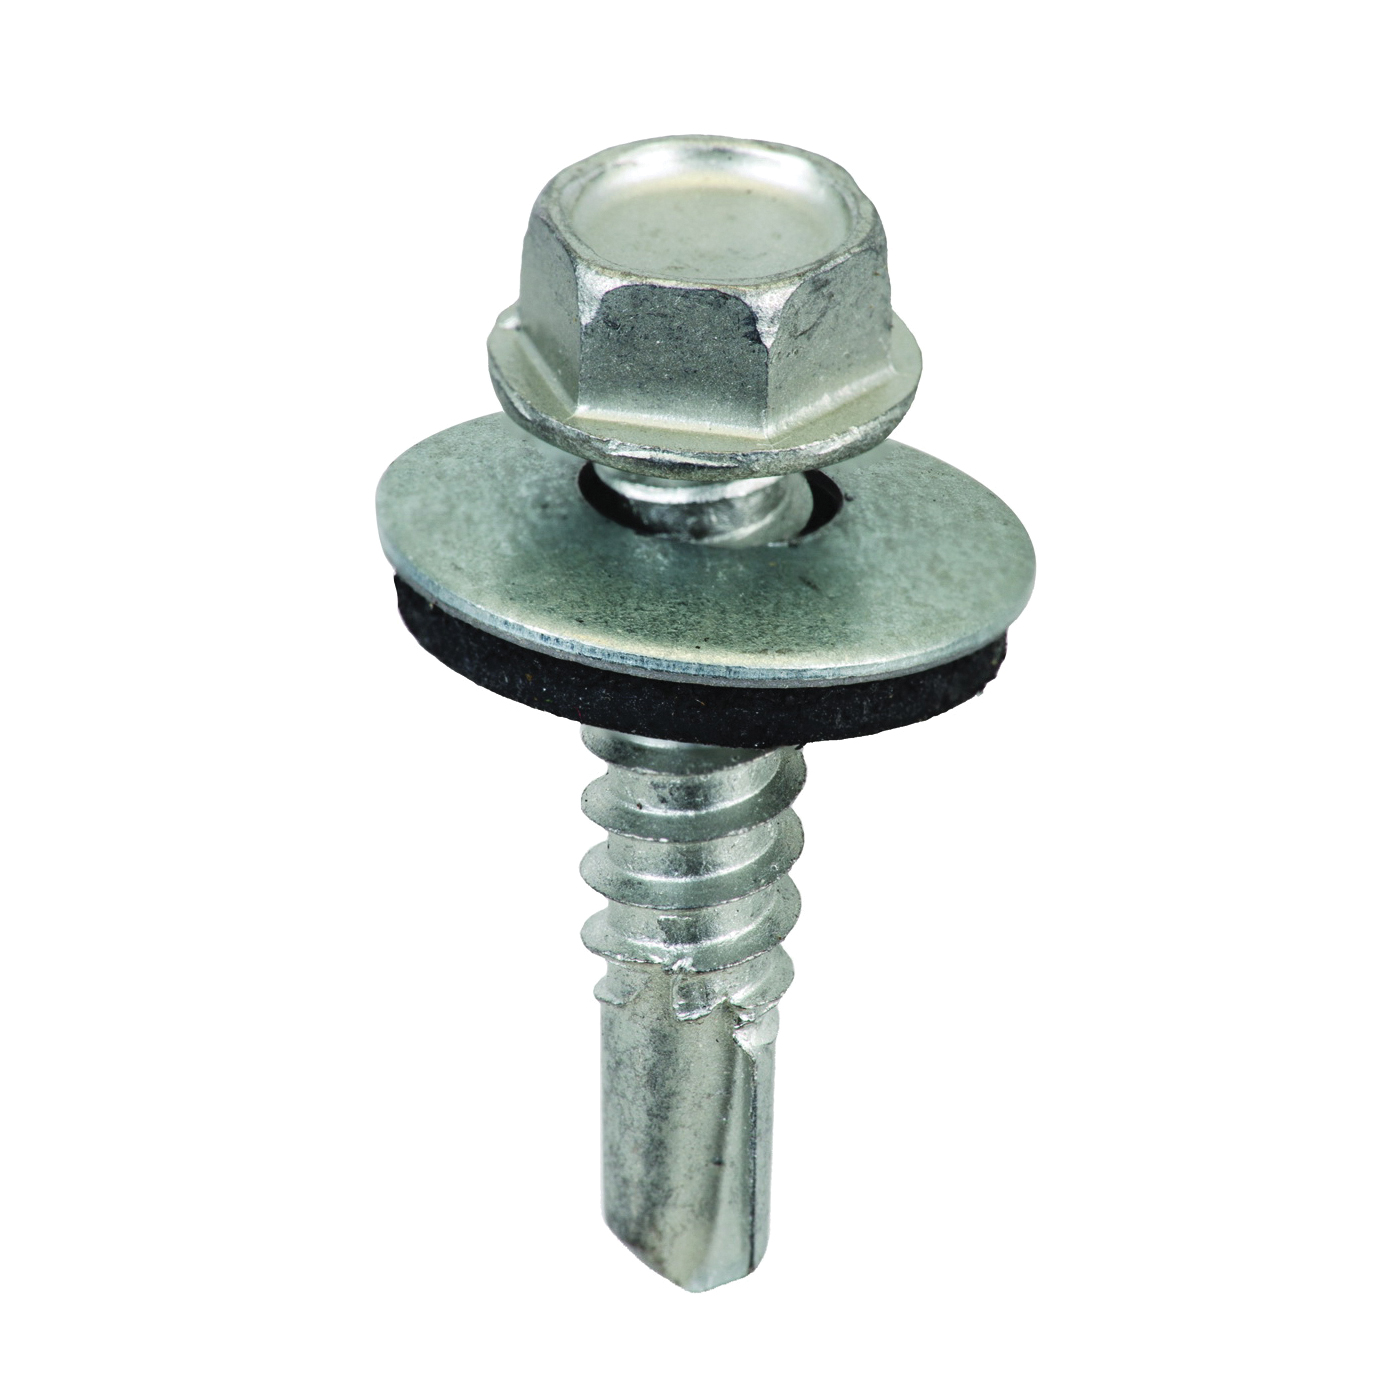 Picture of Acorn International SW-MM1212G250 Screw, #12 Thread, Self-Drilling Thread, Hexagonal Head, Self Drill Point